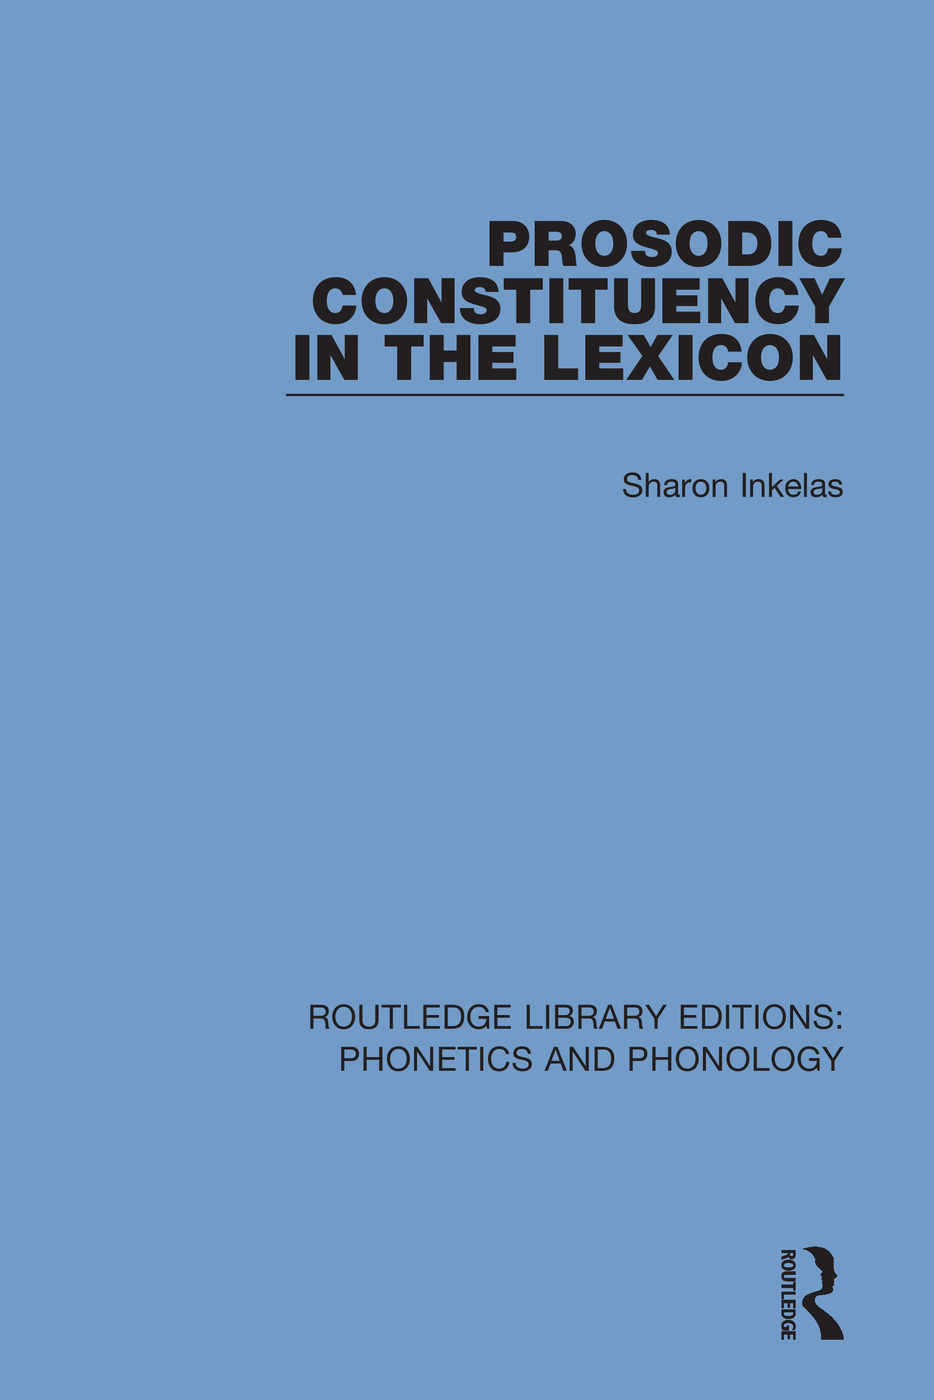 Prosodic Constituency in the Lexicon